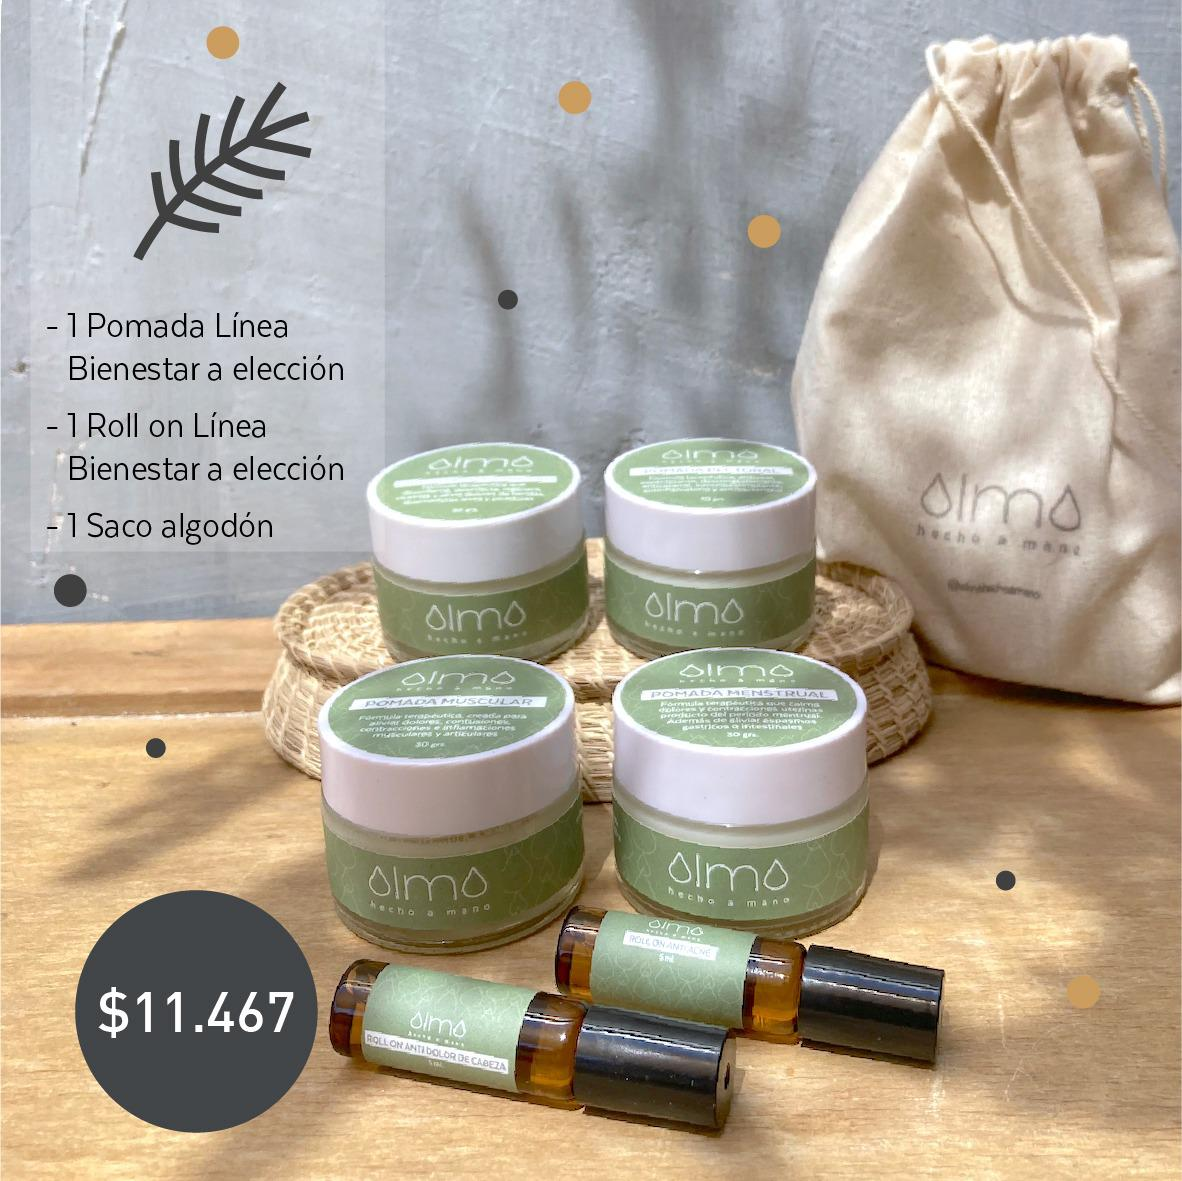 Ideas de regalo: packs de cosmética vegetal Alma 3